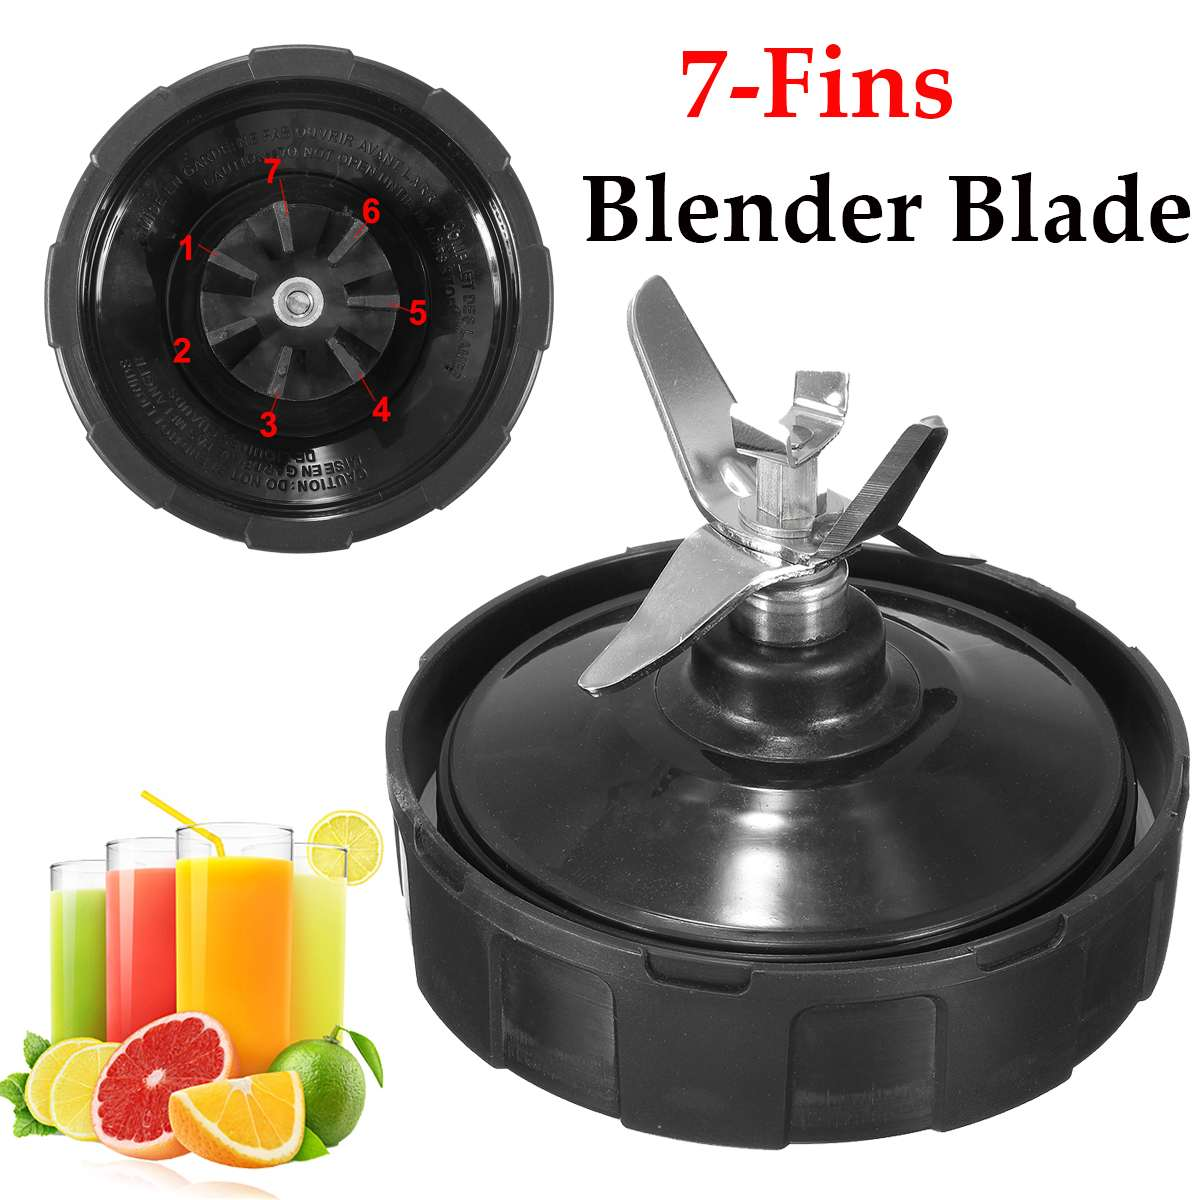 Stainless Steel Silver Blenders Parts 7 Fins Blade Replacement Blenders Parts For NUTRI NINJA BL450 Auto-iQ BL481 BL482